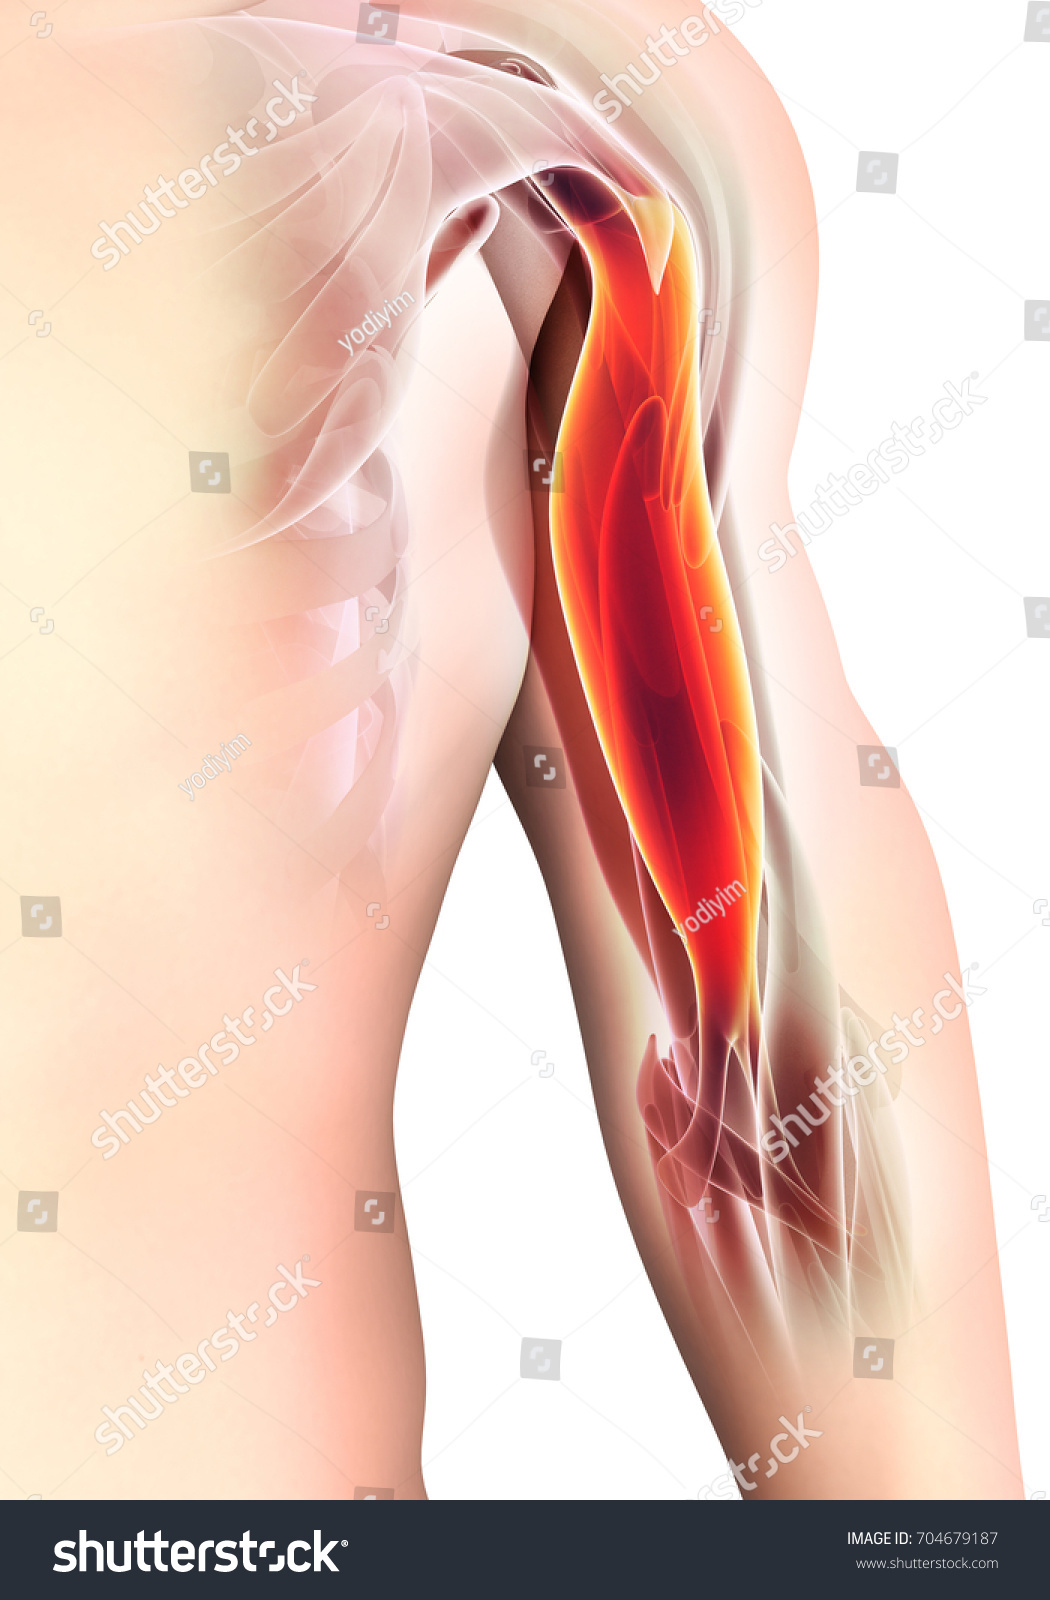 Medical Scientific Graphic Background Bicep Muscular Stock ...